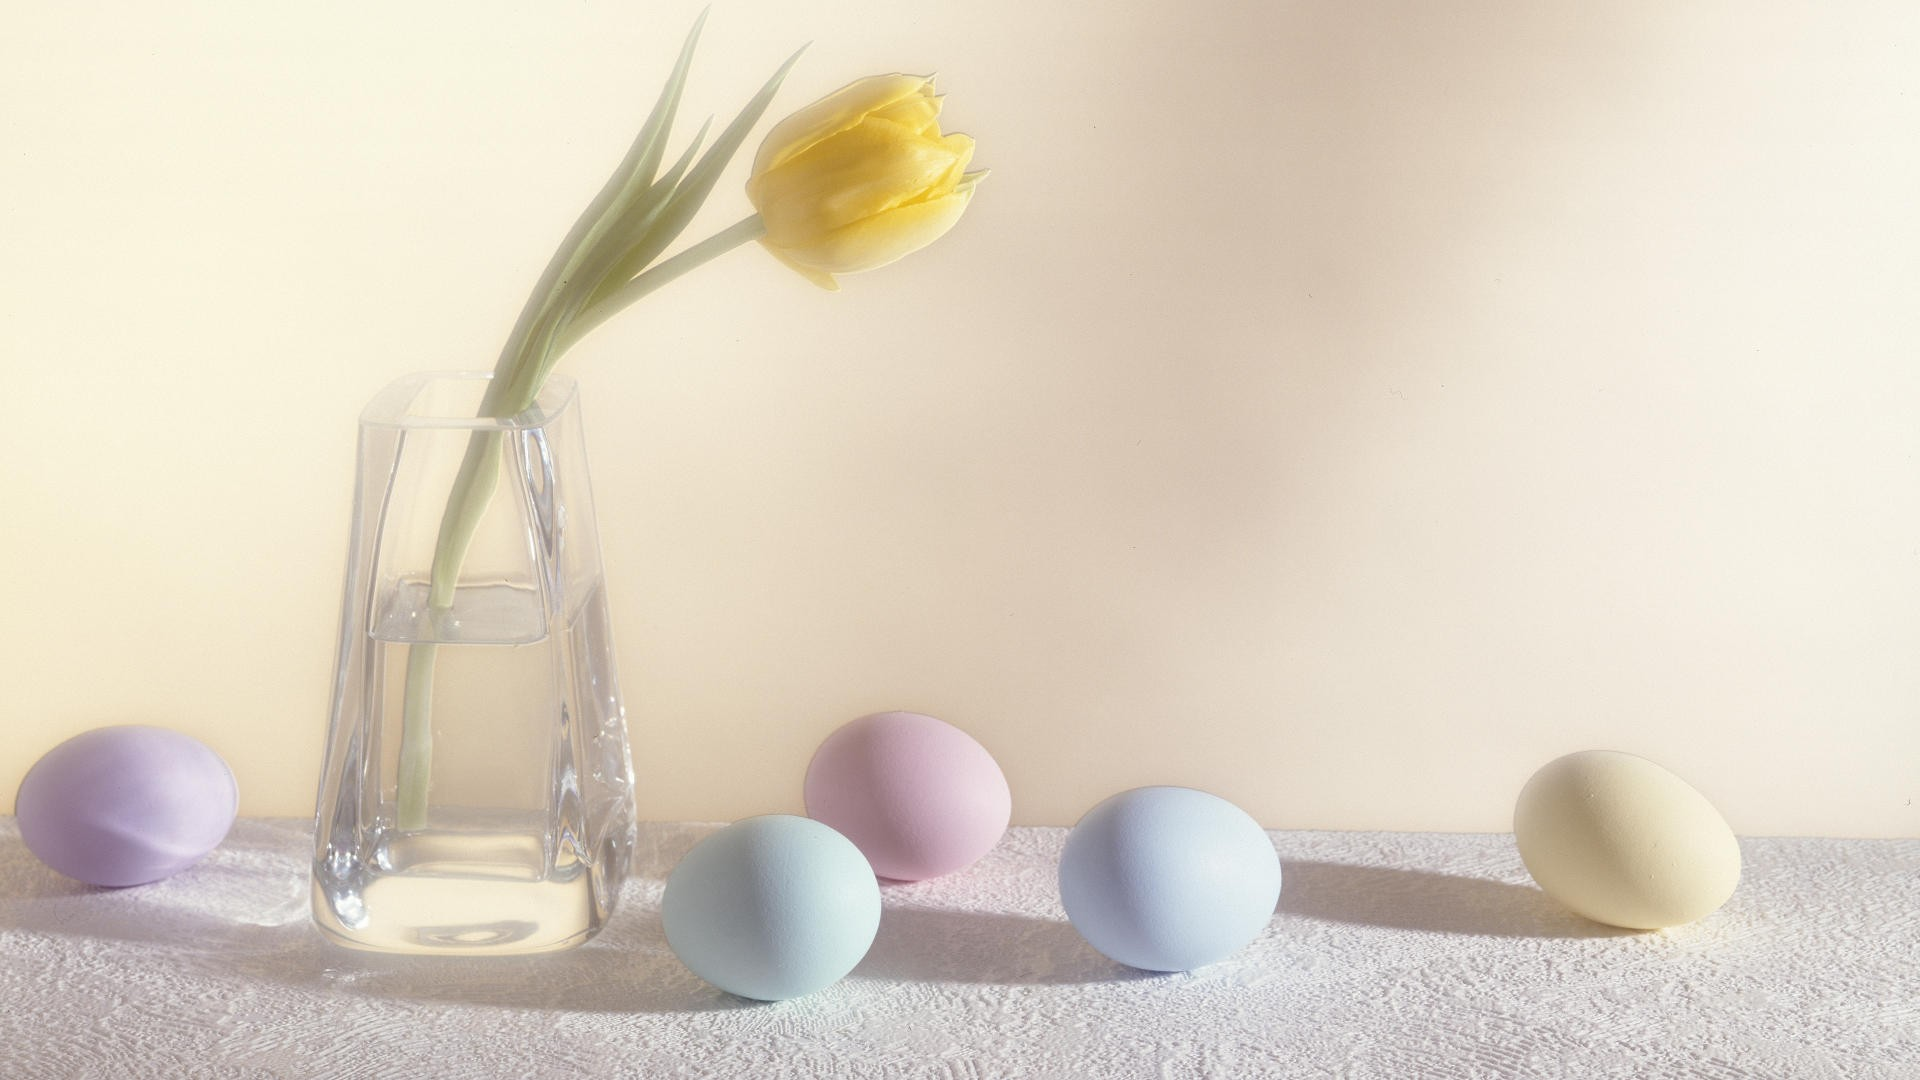 1920x1080 Easter Eggs And Flower Desktop Pc And Mac Wallpaper